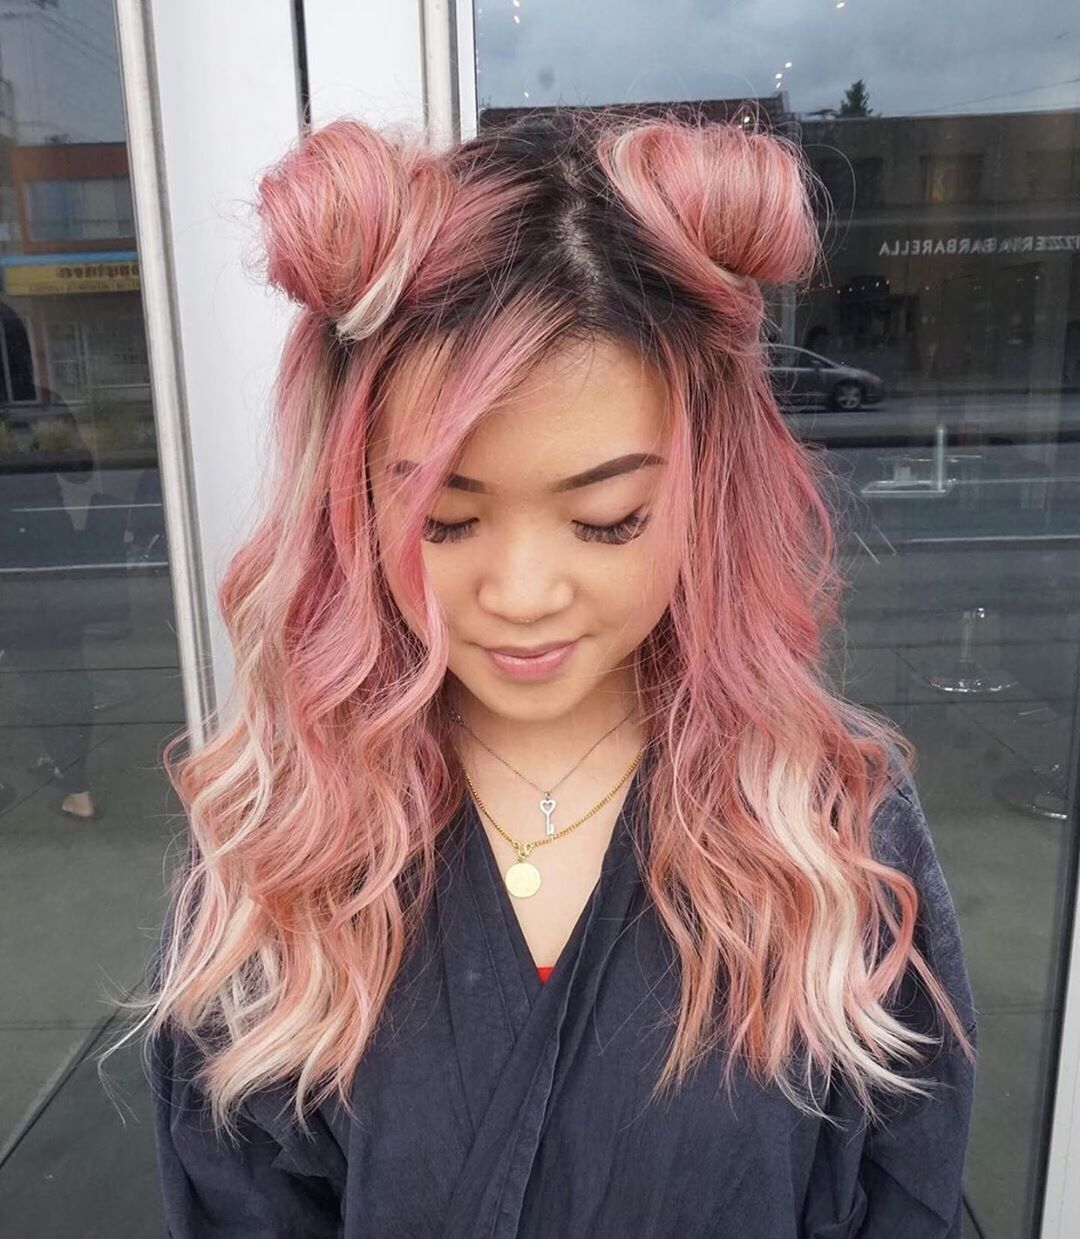 Overtone On Instagram Space Buns Lo Rean Image Description Person With Two Pastel Pink And Rose Go Half And Half Hair Rose Gold Hair Hair Color Pastel